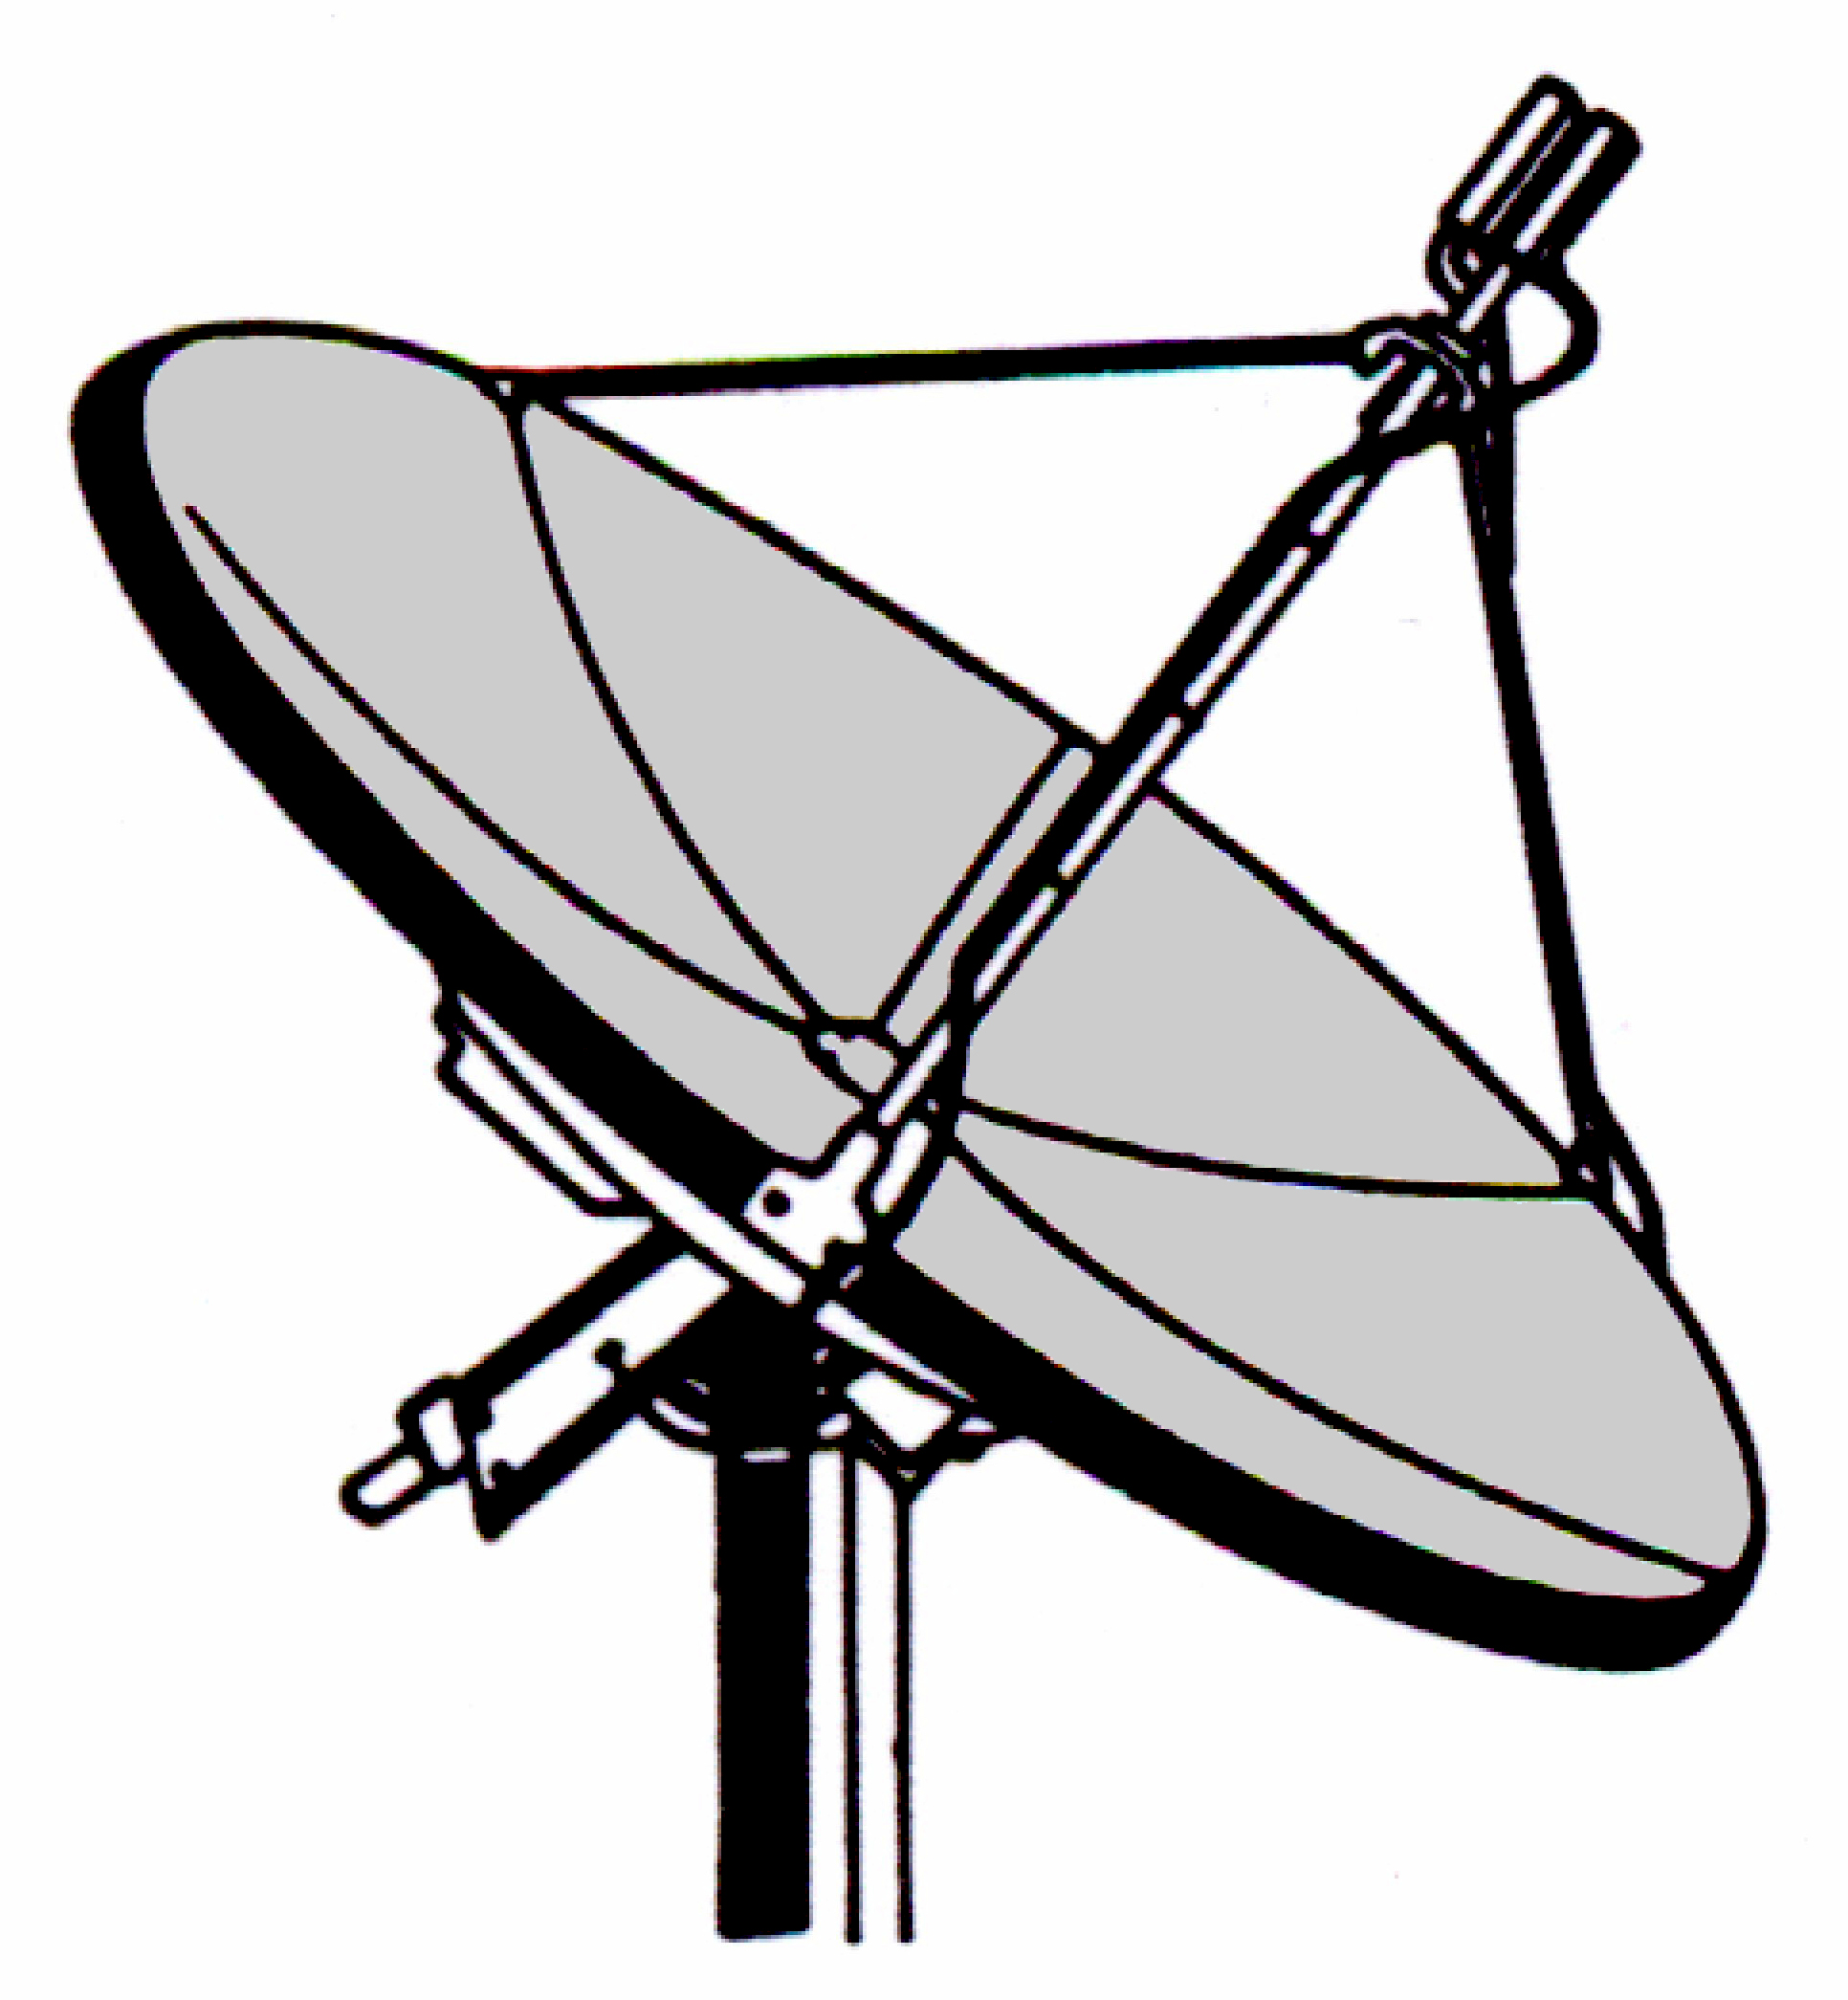 Satelite TV antenak